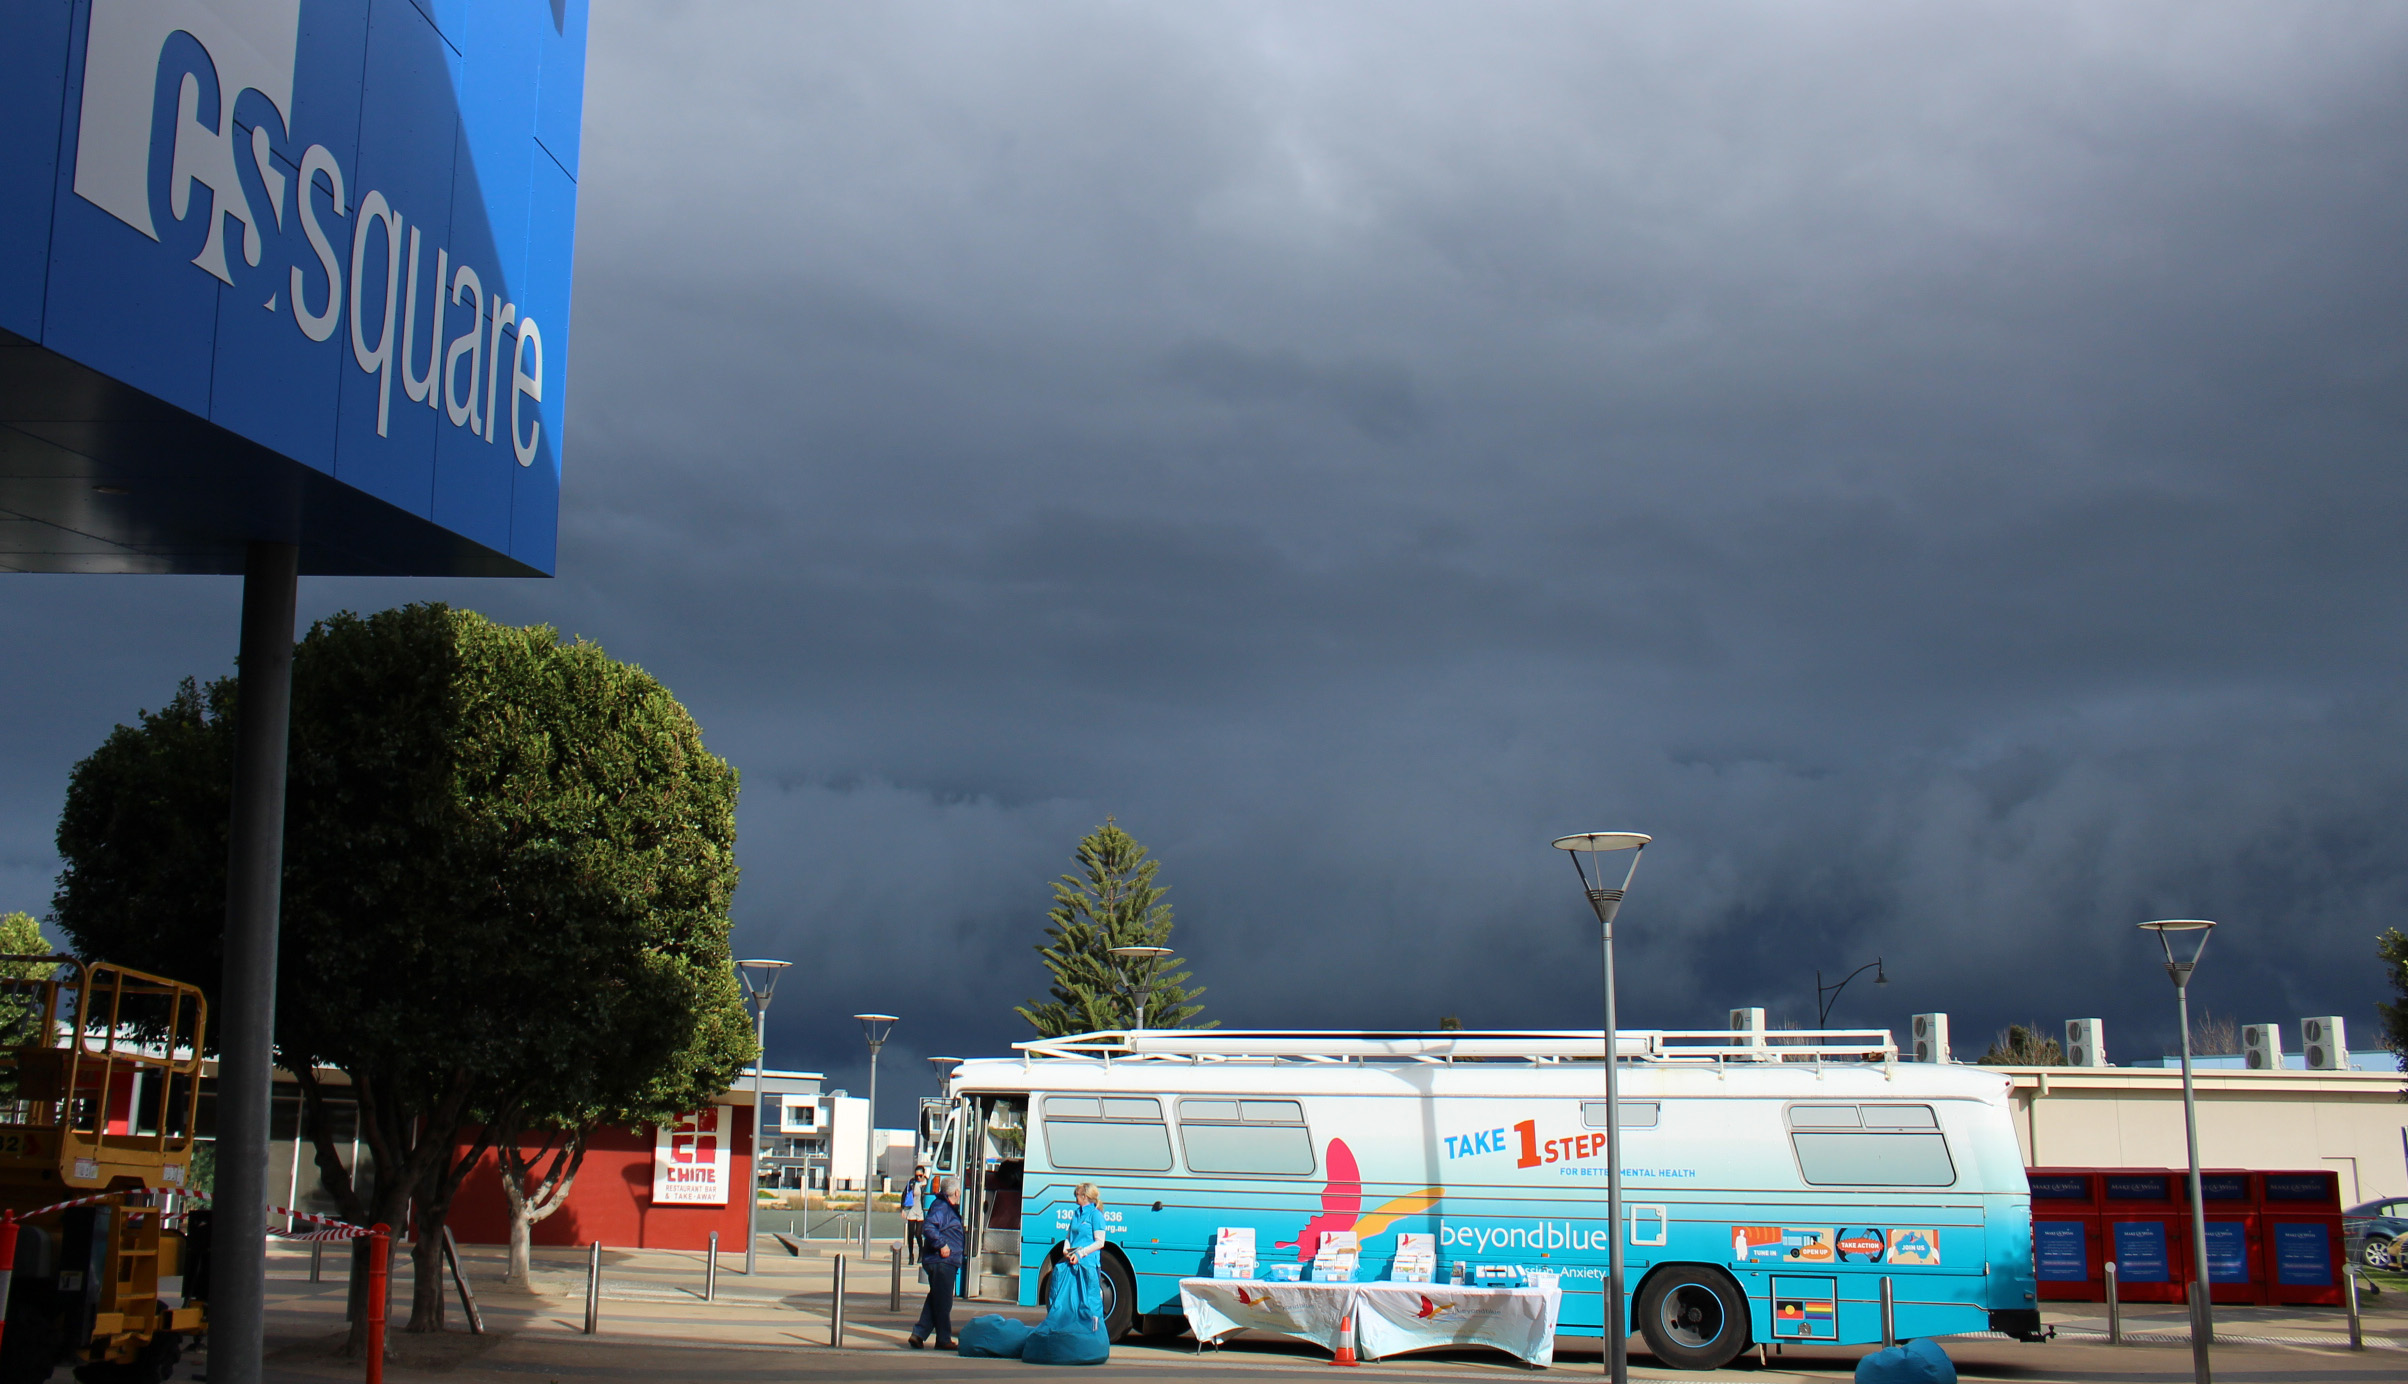 The storm clouds roll in over Caroline Springs: VIC.